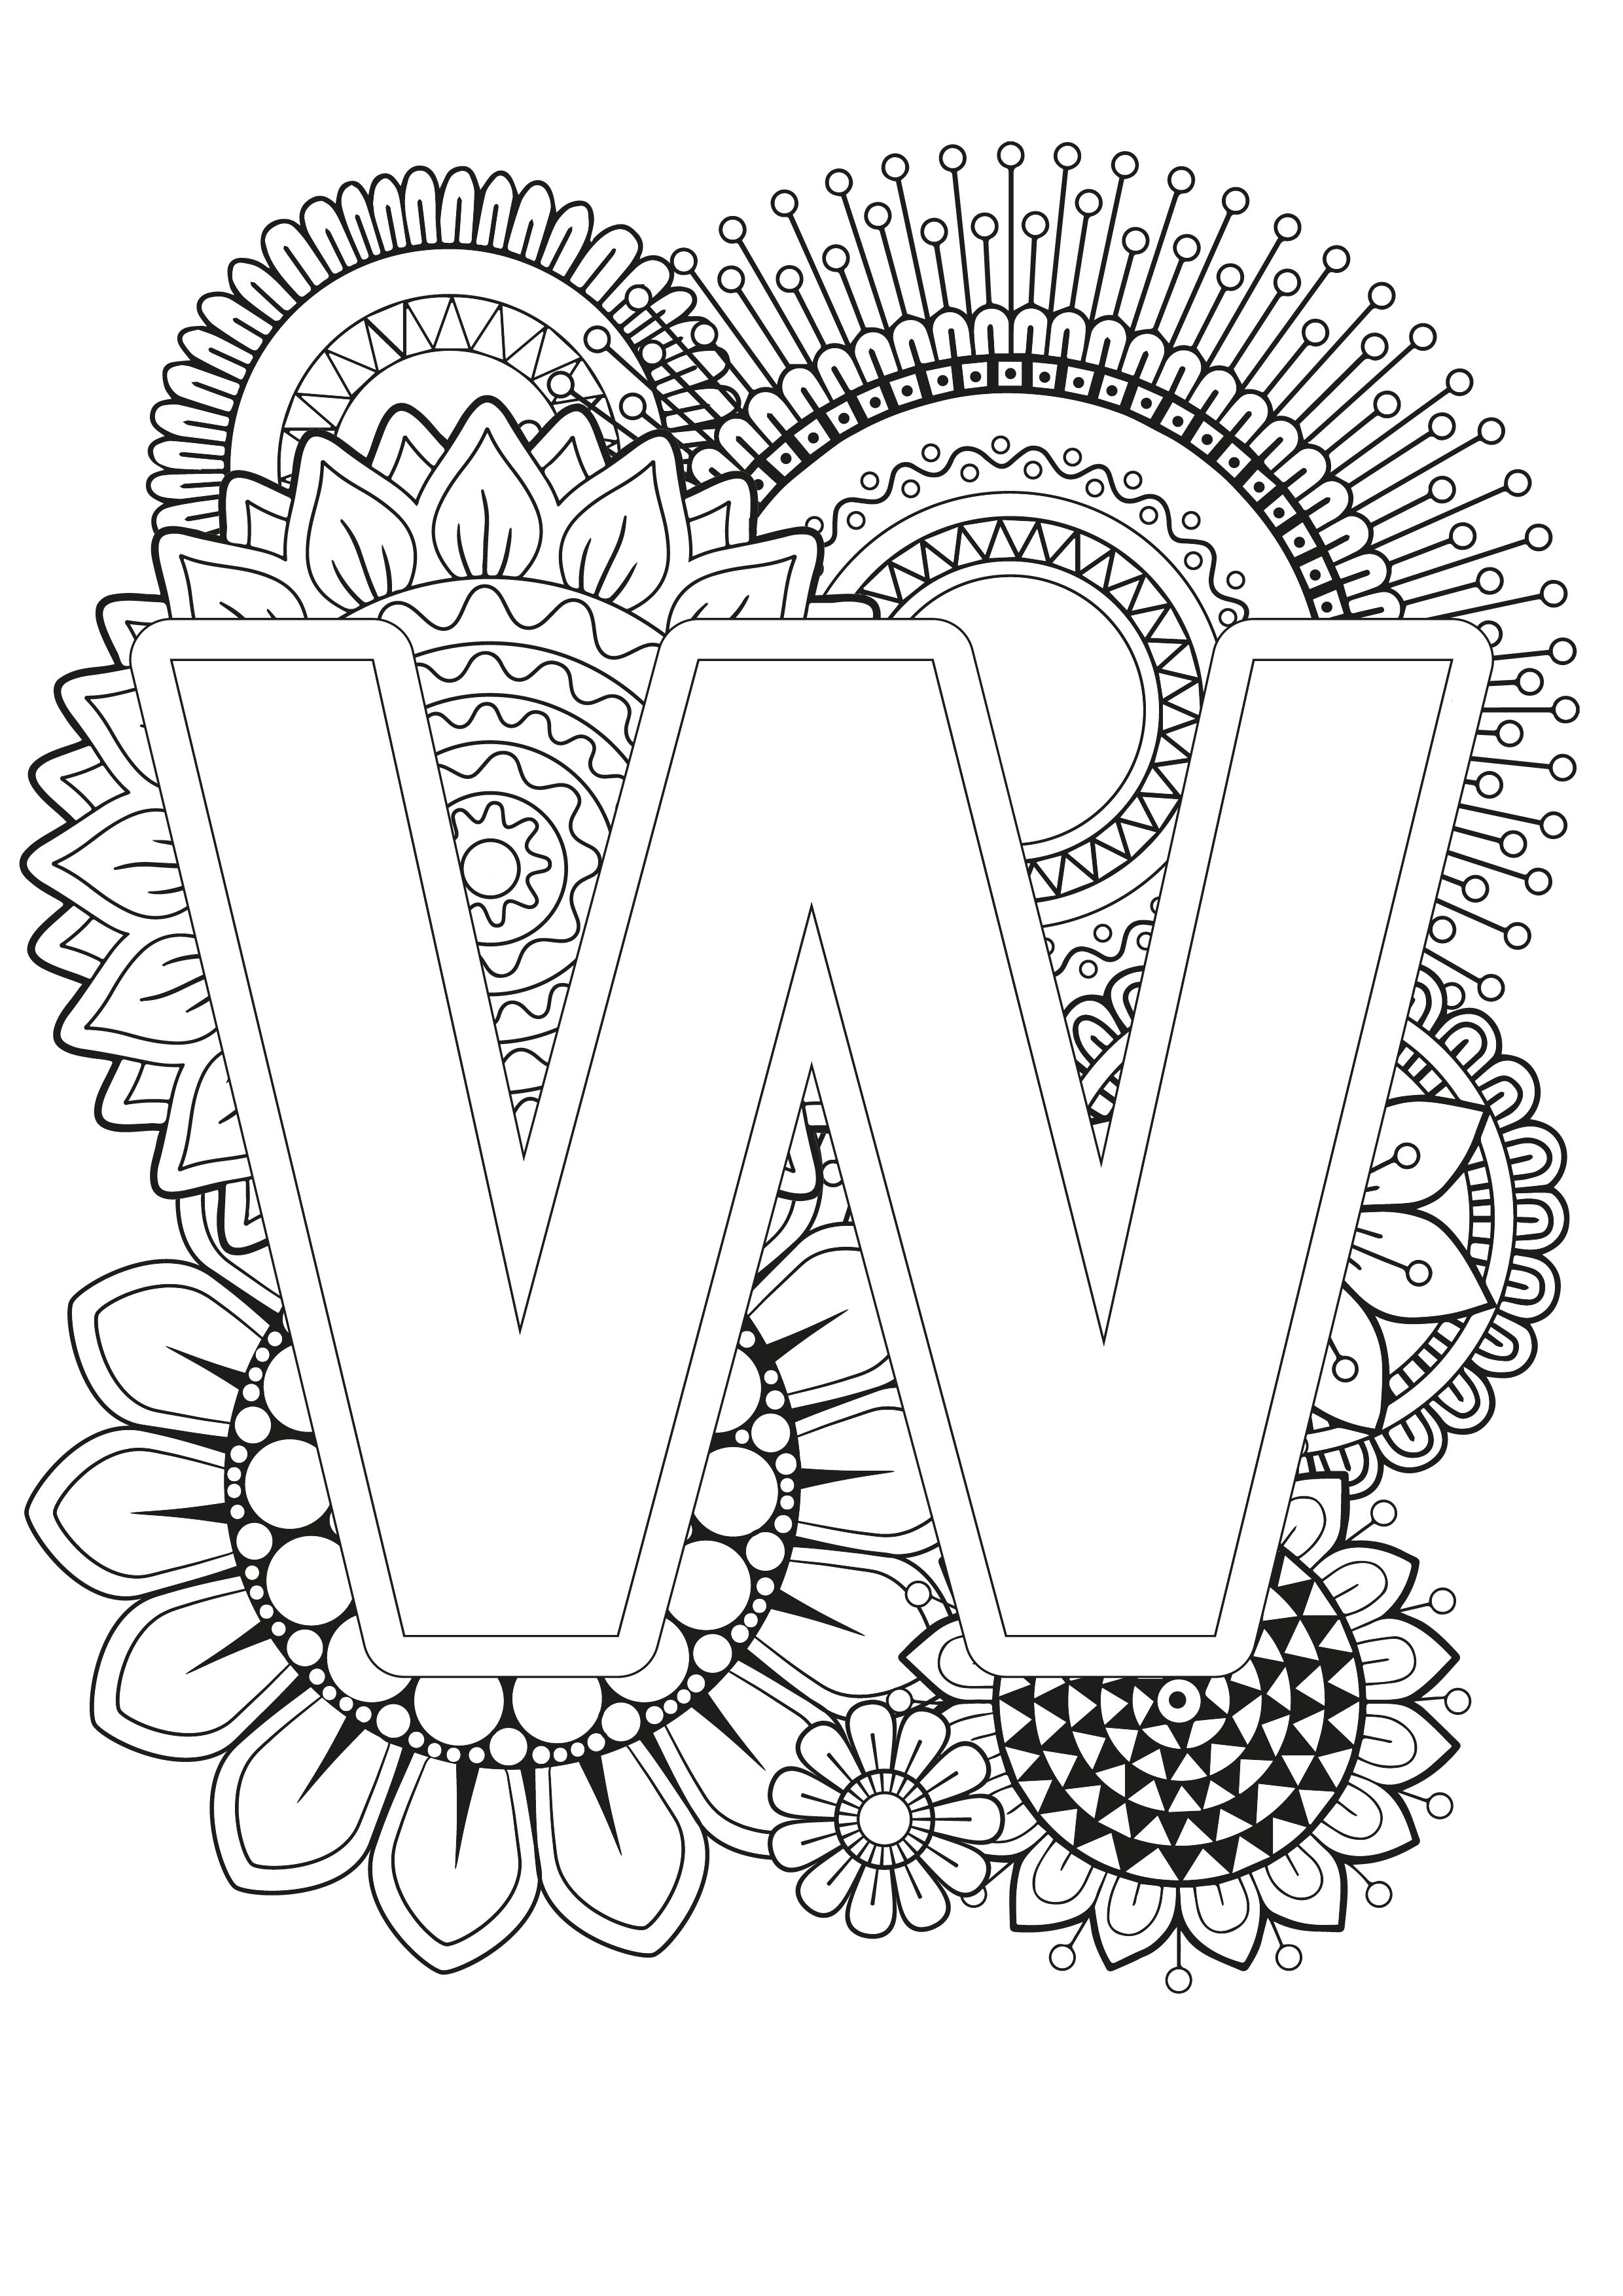 - Mindfulness Coloring Page - Alphabet (With Images) Coloring